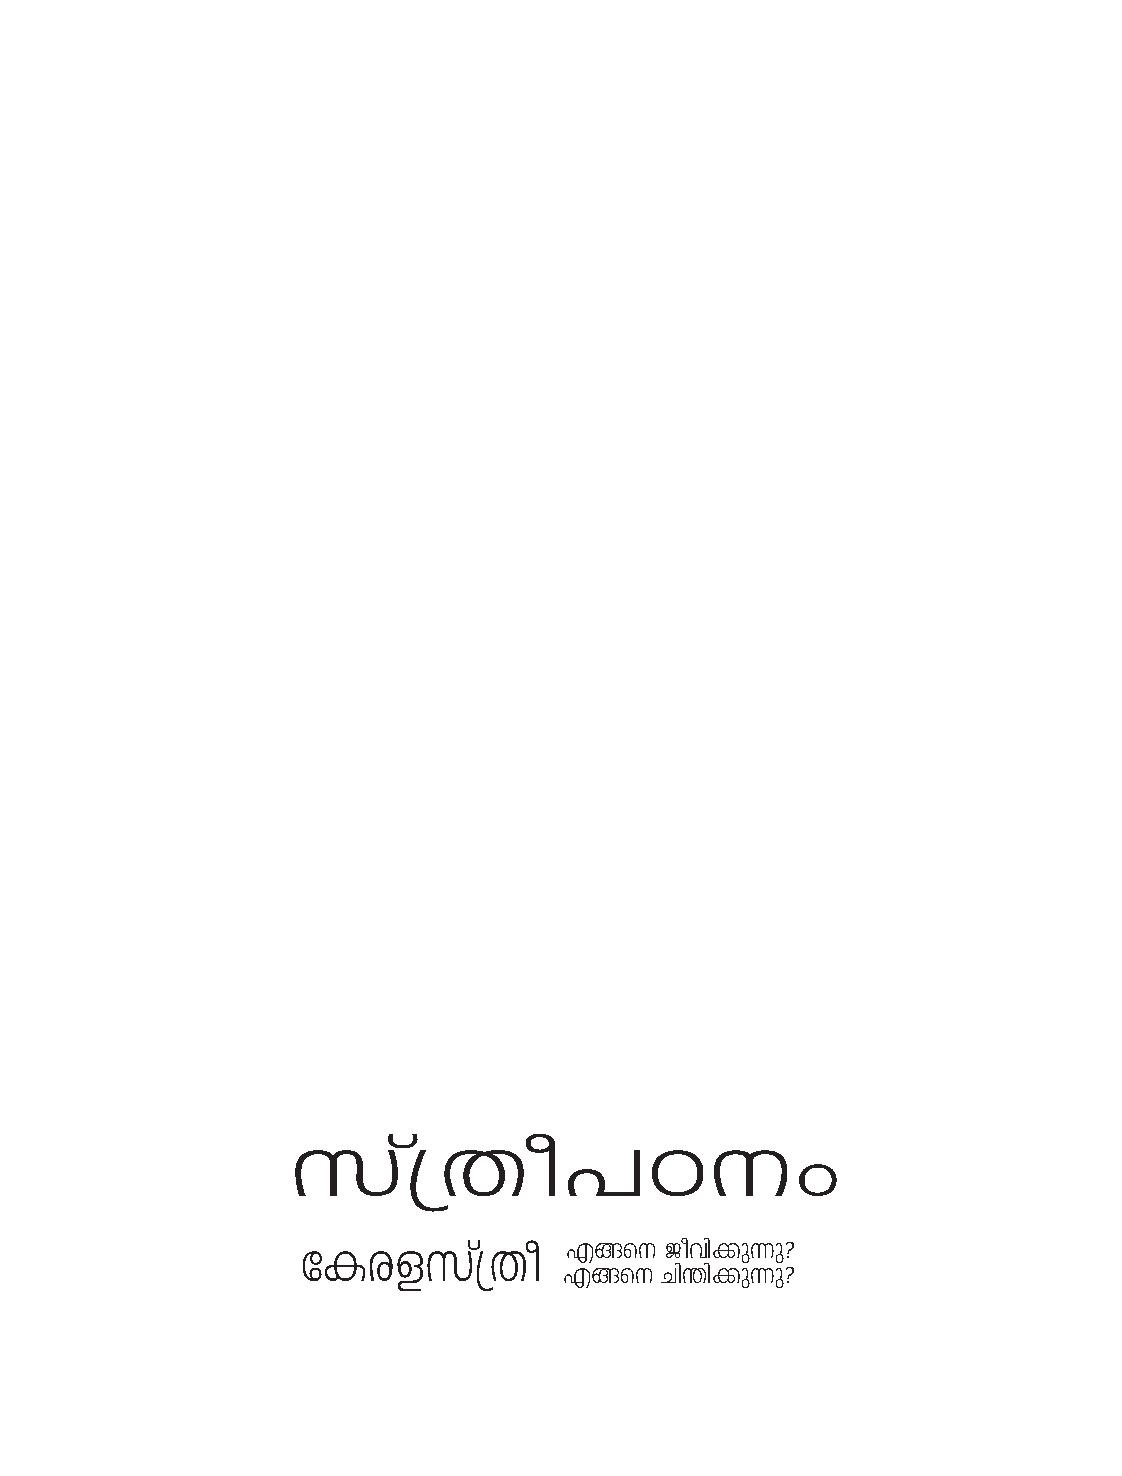 Sthreepadhanam Layout Final.pdf